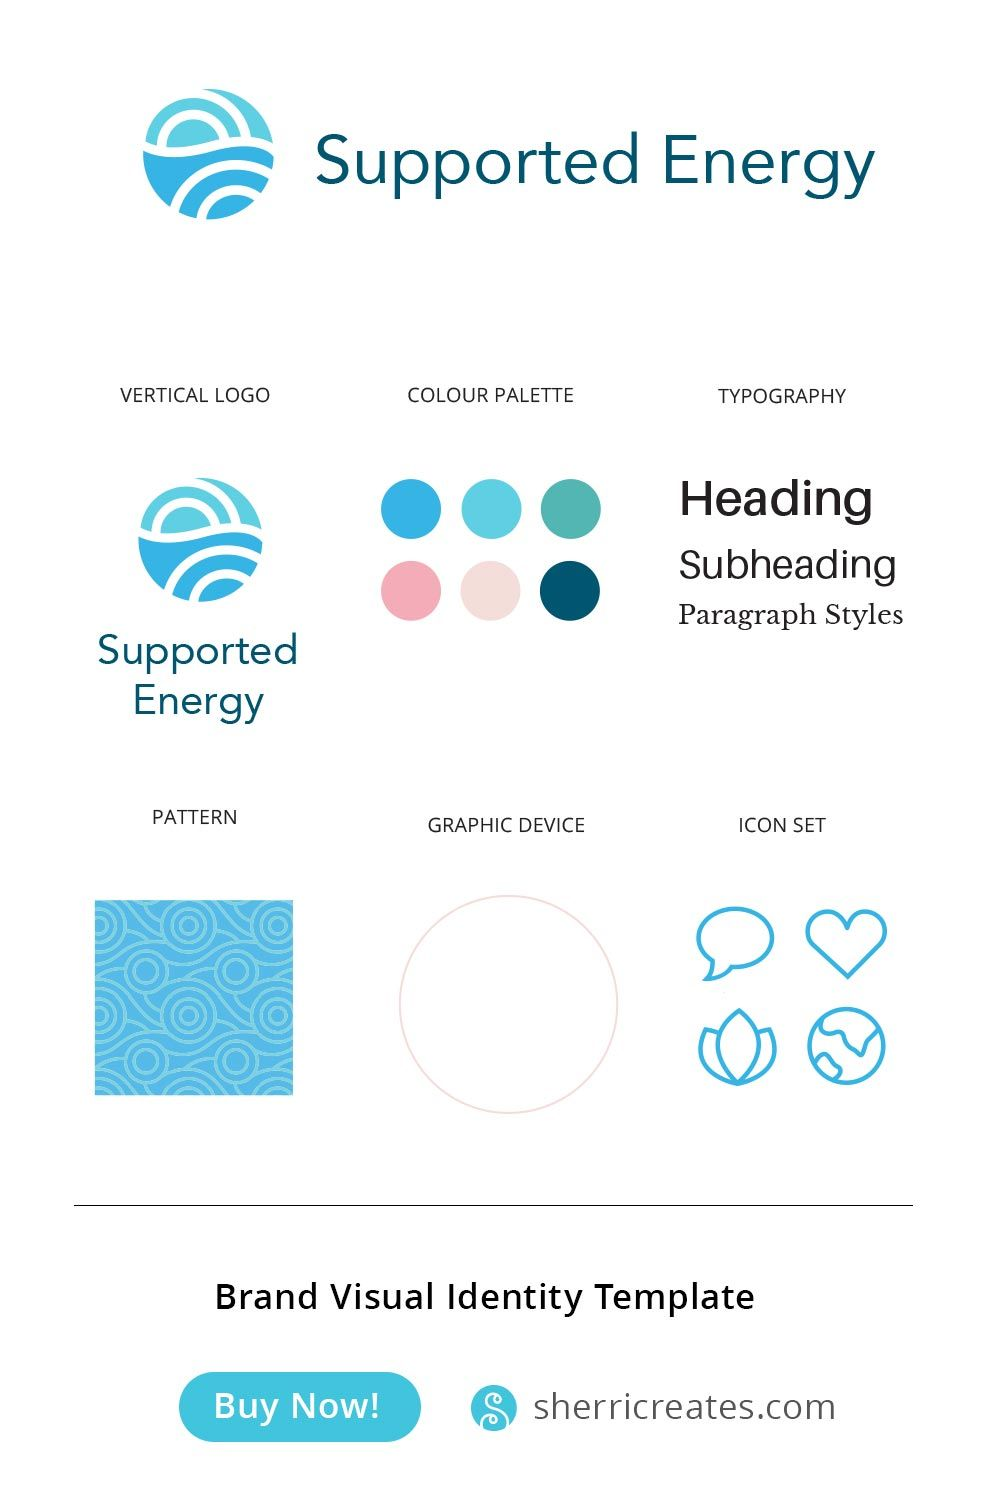 Supported Energy Visual Identity Visual Identity Identity Branding Shop